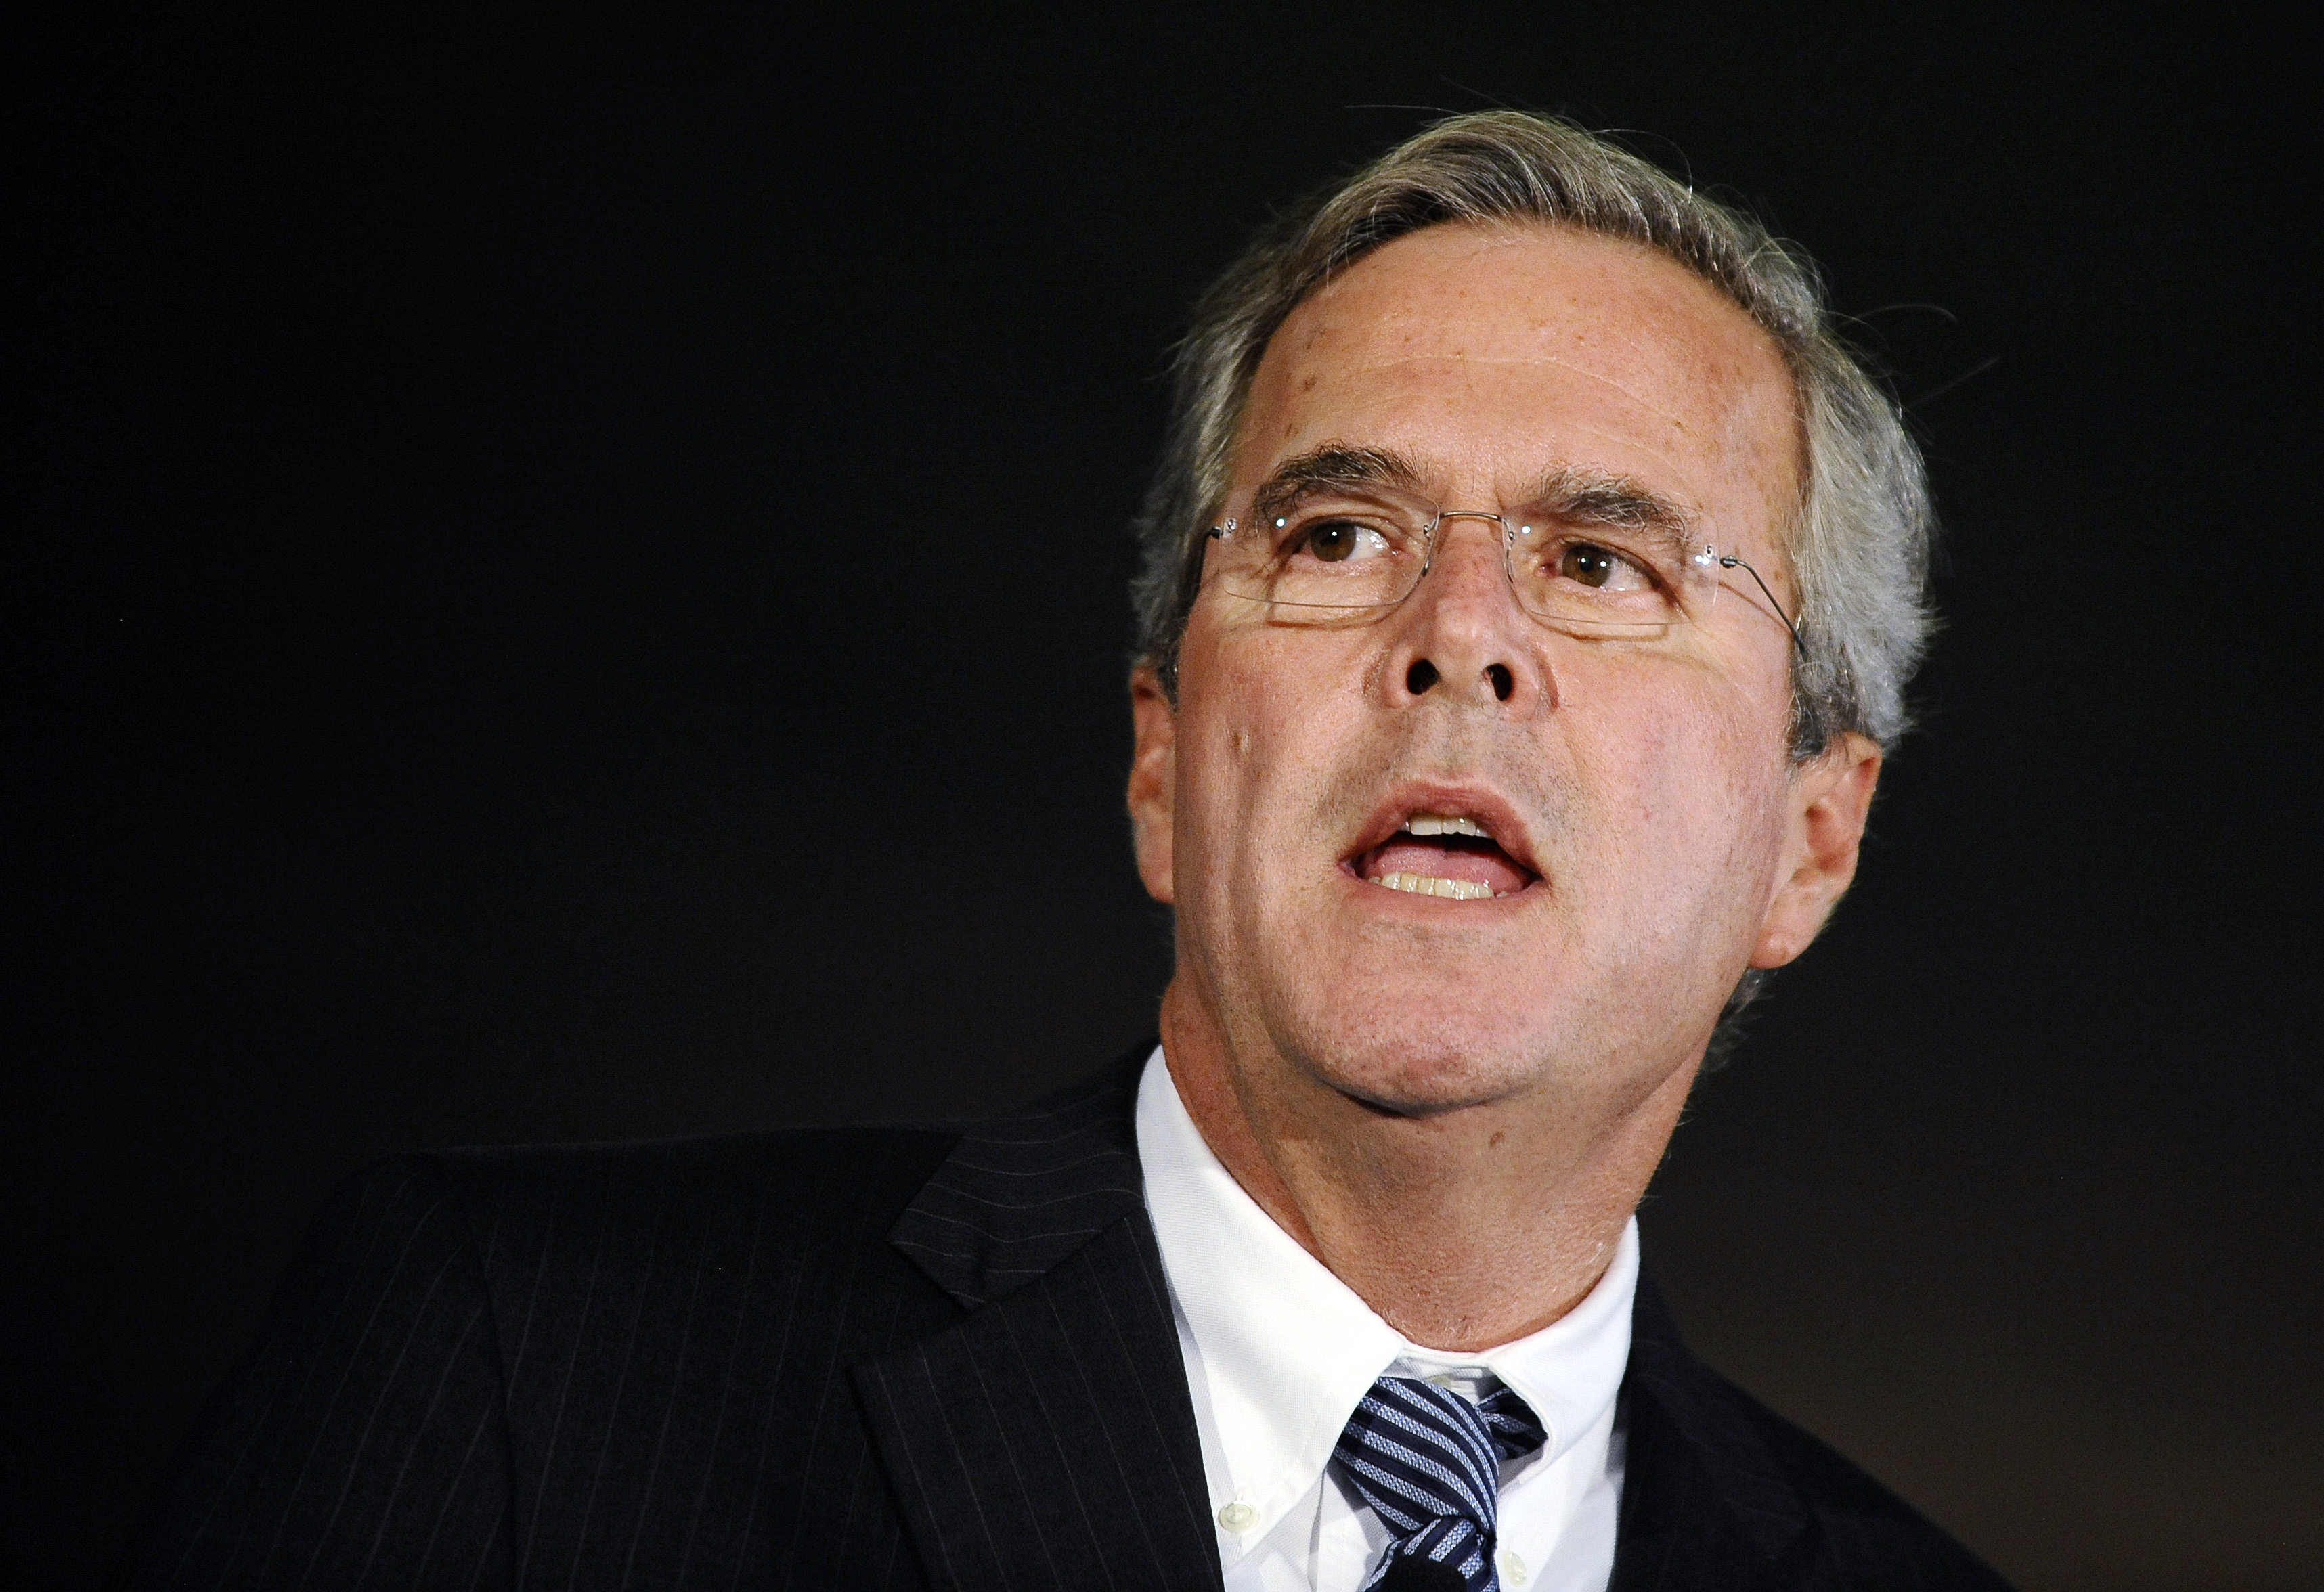 Republican presidential candidate former Fla. Gov. Jeb Bush speaks during a town hall meeting on Aug. 17, 2015, in Columbia, S.C.